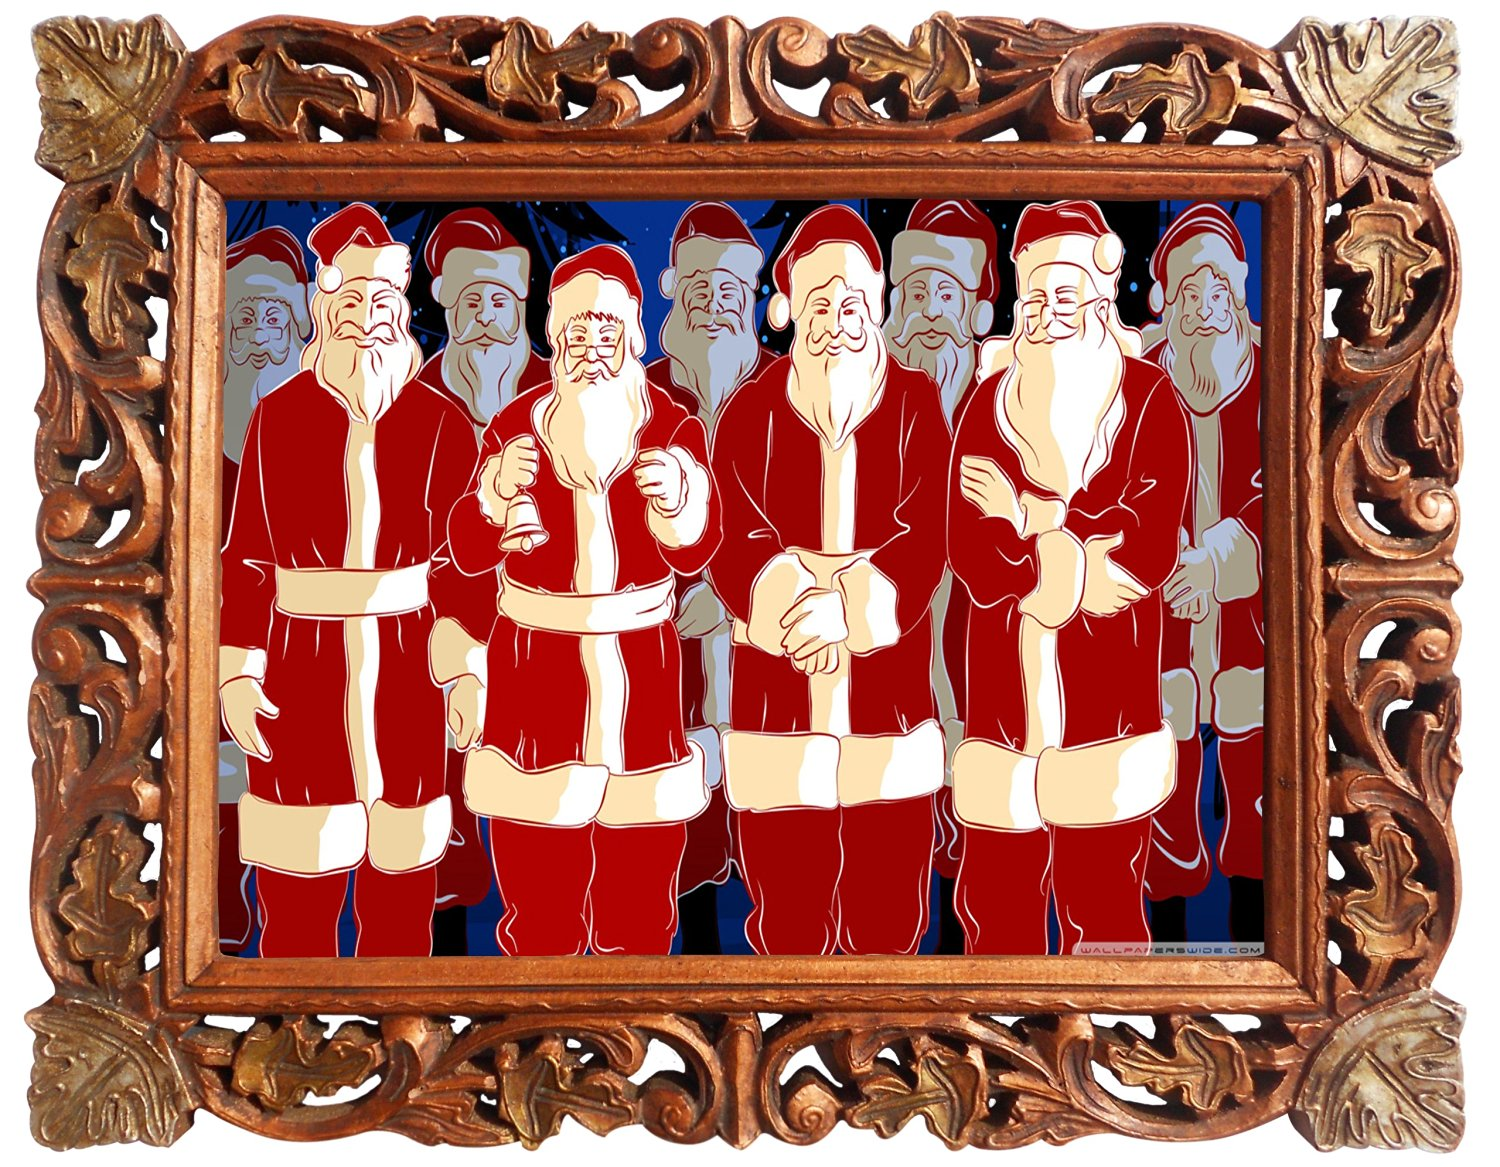 Buy santa claus with his santa friends poster framed in wood santa claus with his santa friends poster framed in wood craft frame indian wood jeuxipadfo Choice Image